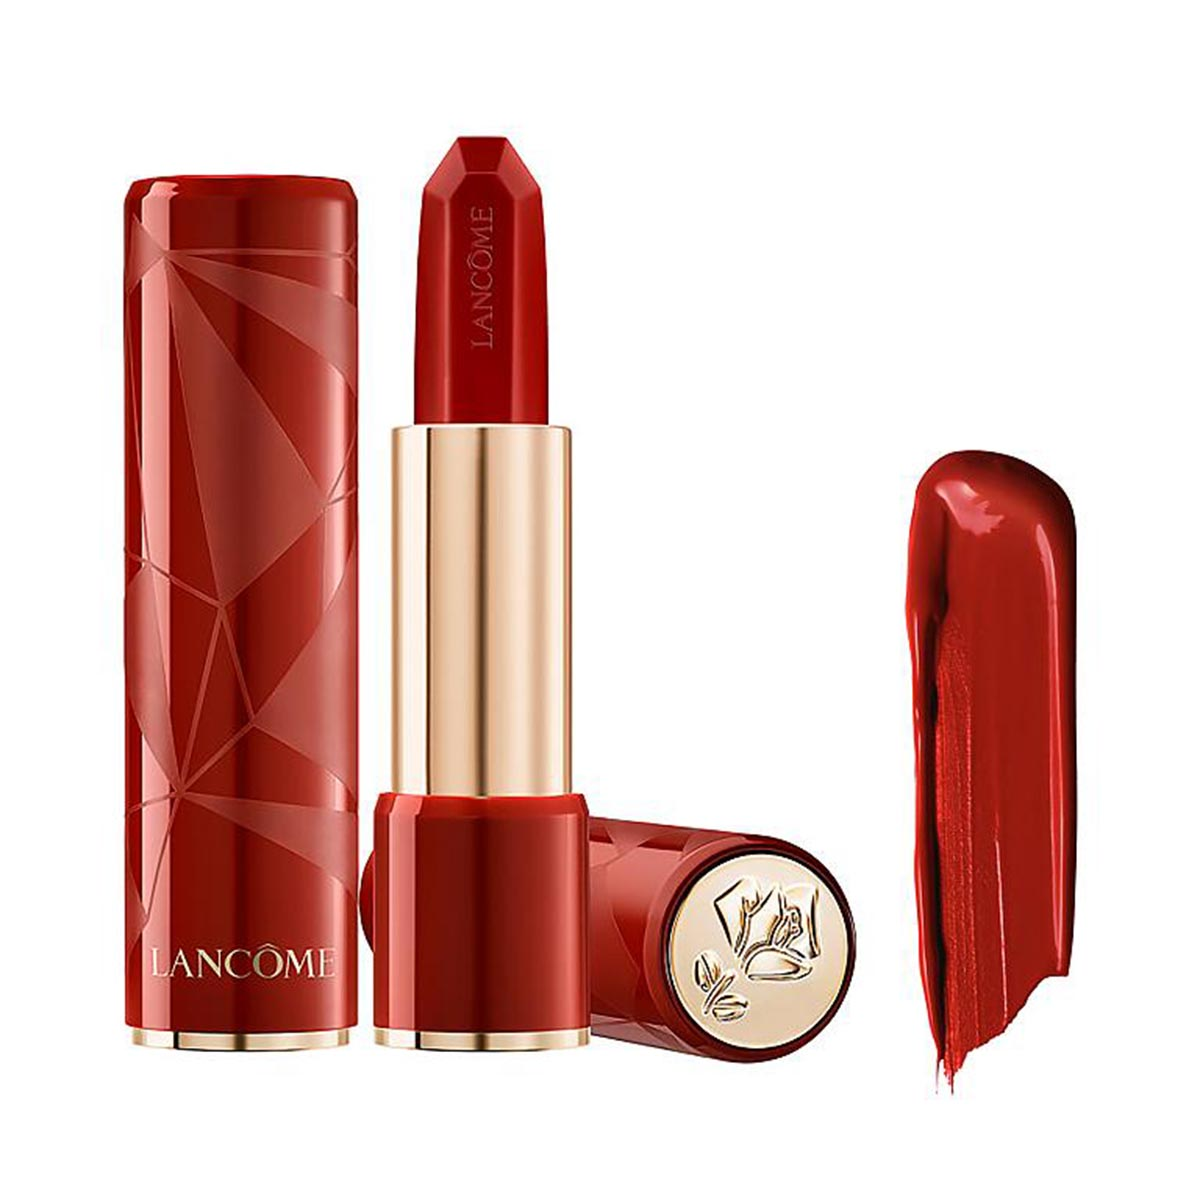 Lancome absolu rouge ruby cream lipstick 02 ruby queen edicion limitada